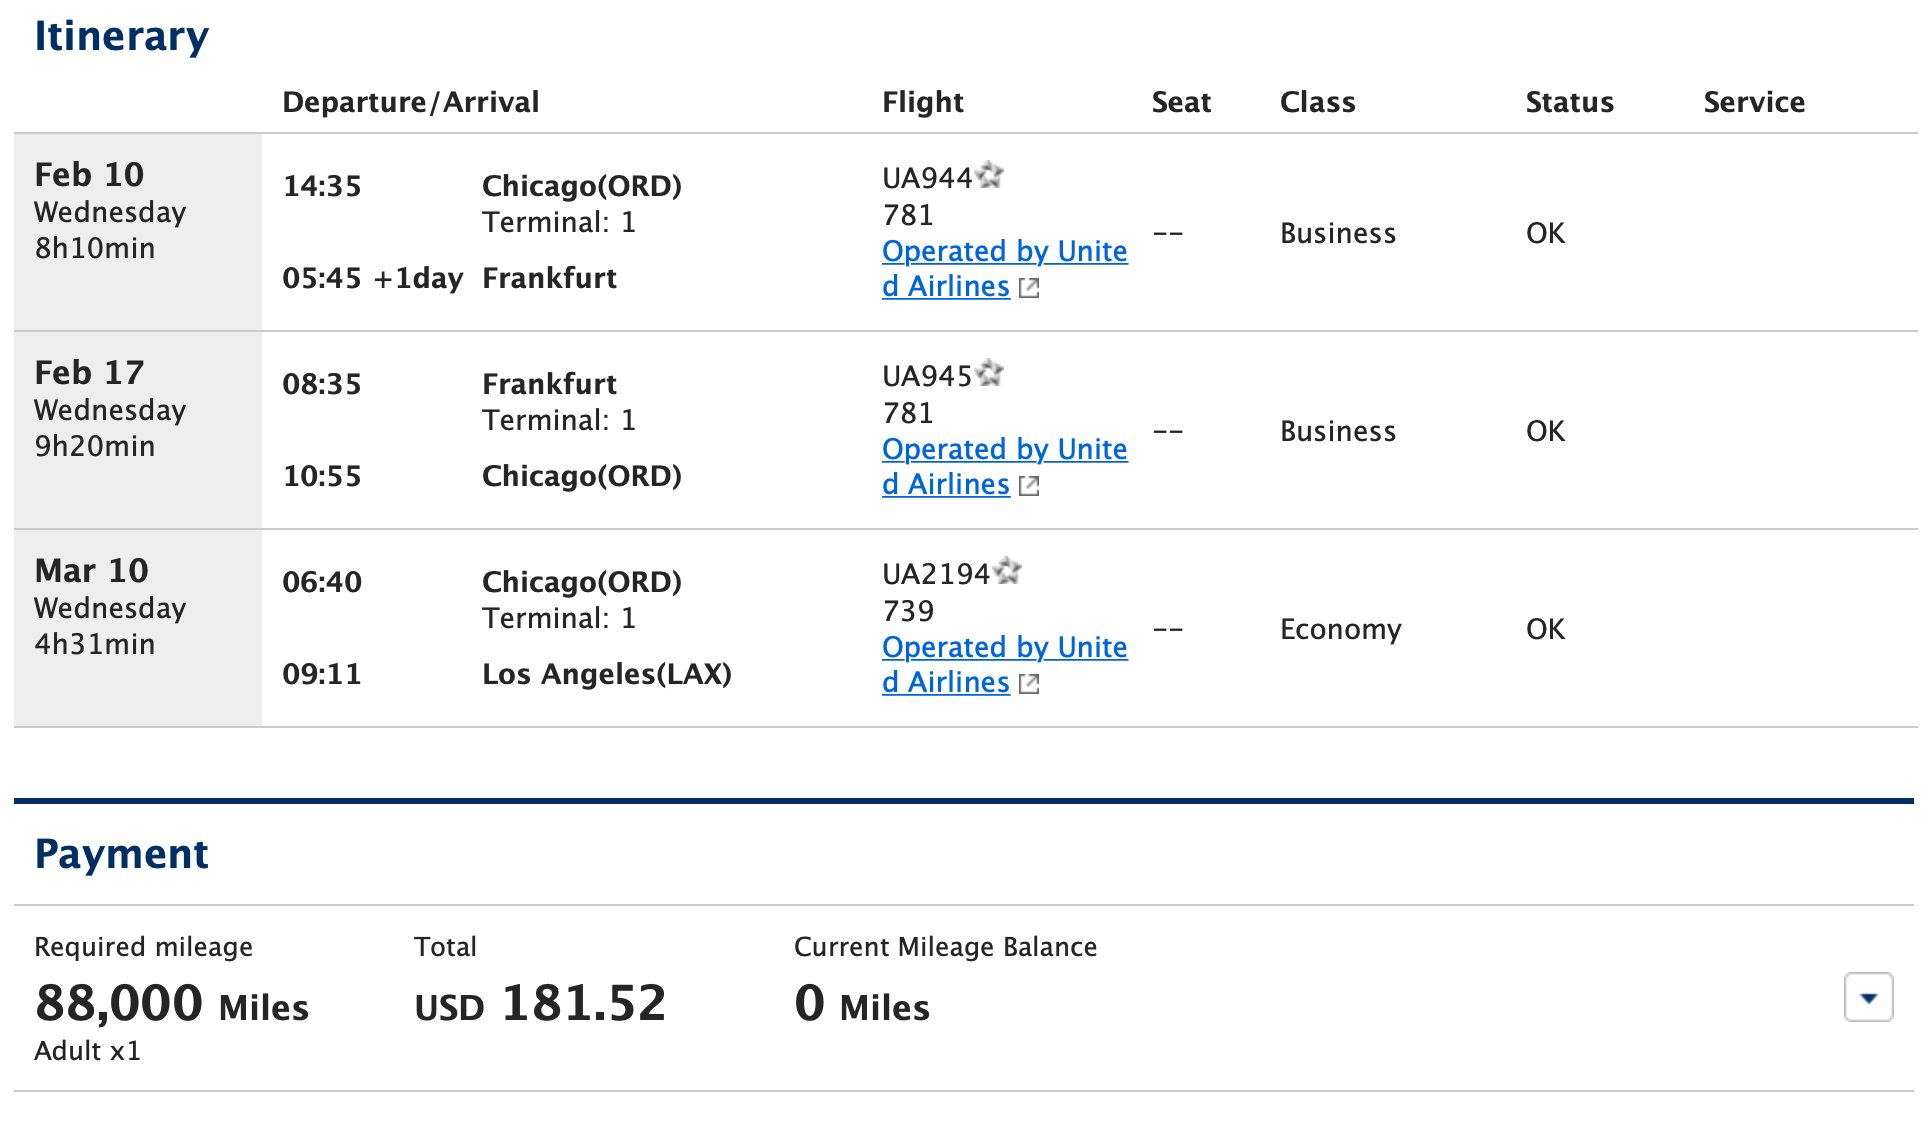 Itinerary Showing Free Domestic Leg Departing Later Than Round Trip